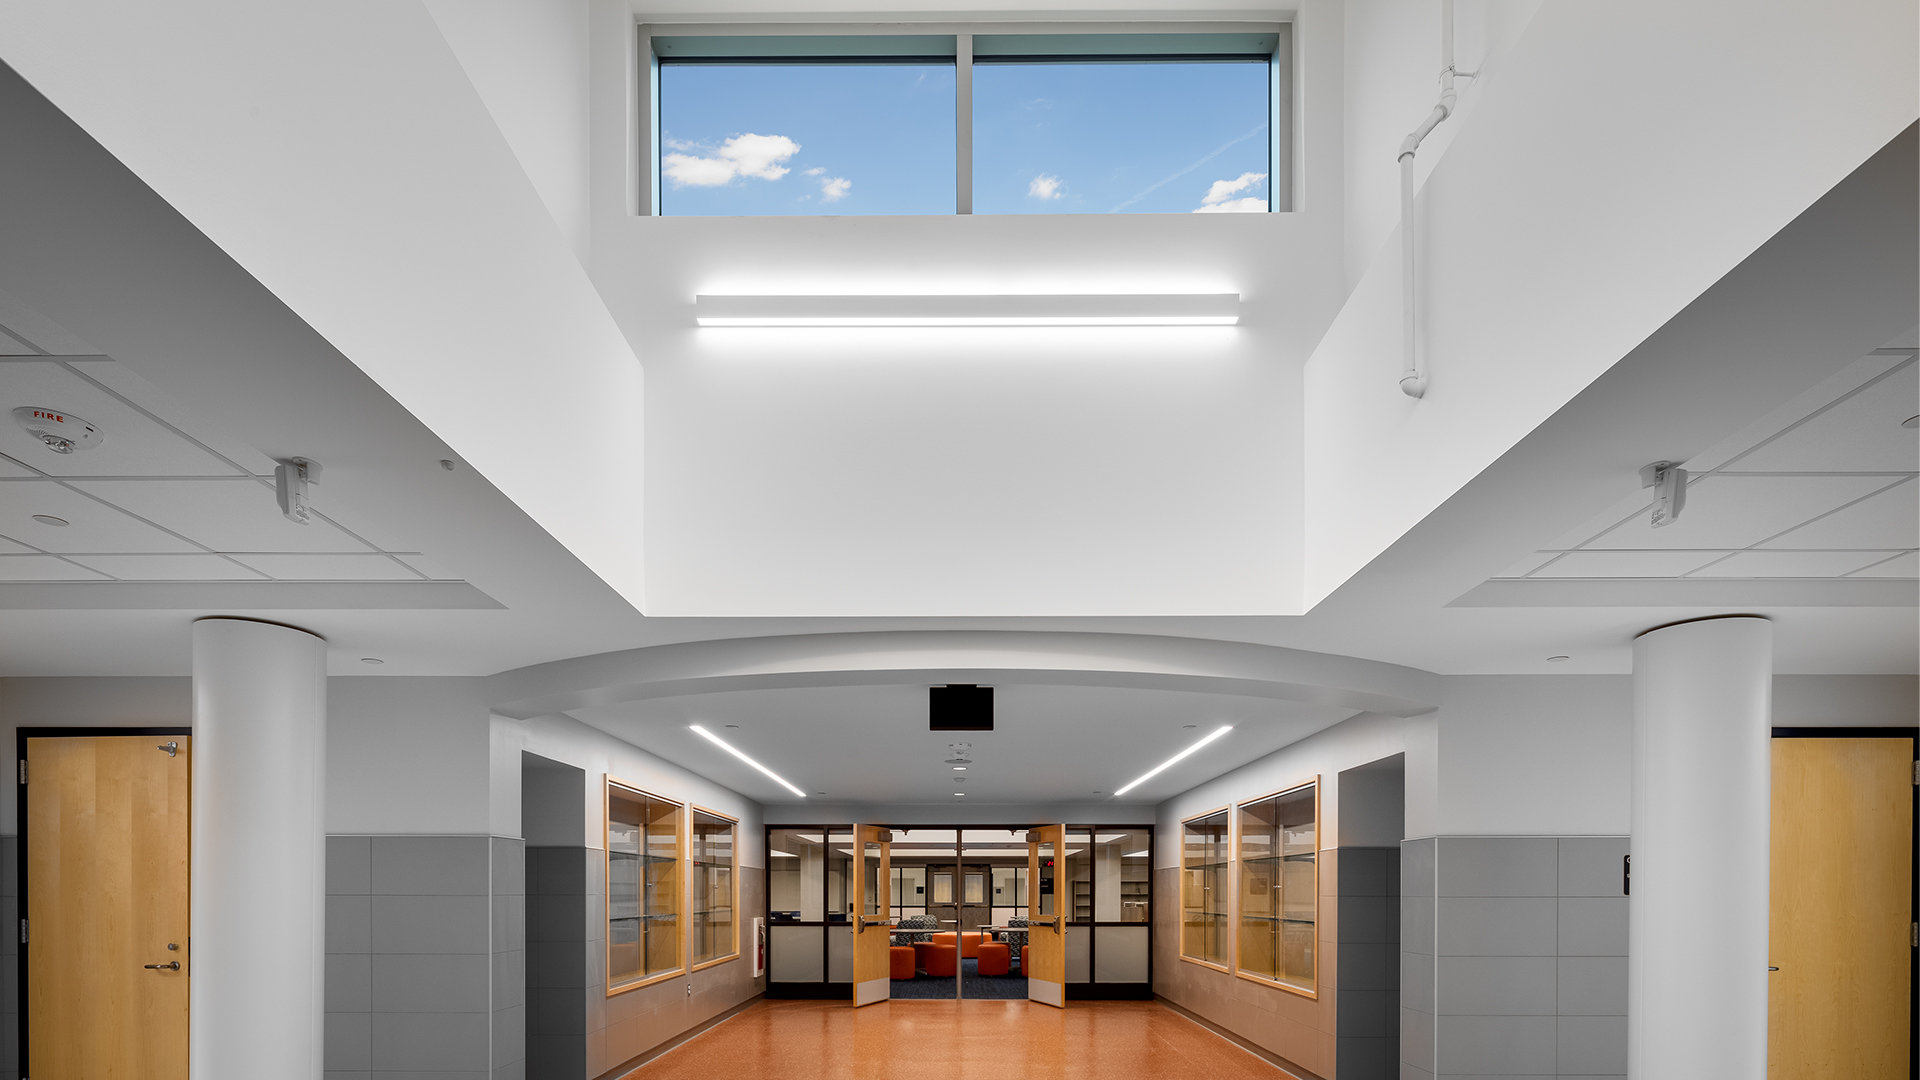 3-Interior-4_SCHRADERGROUP_Council_Rock_School_District_Rolling_Hillls_Elementary_School